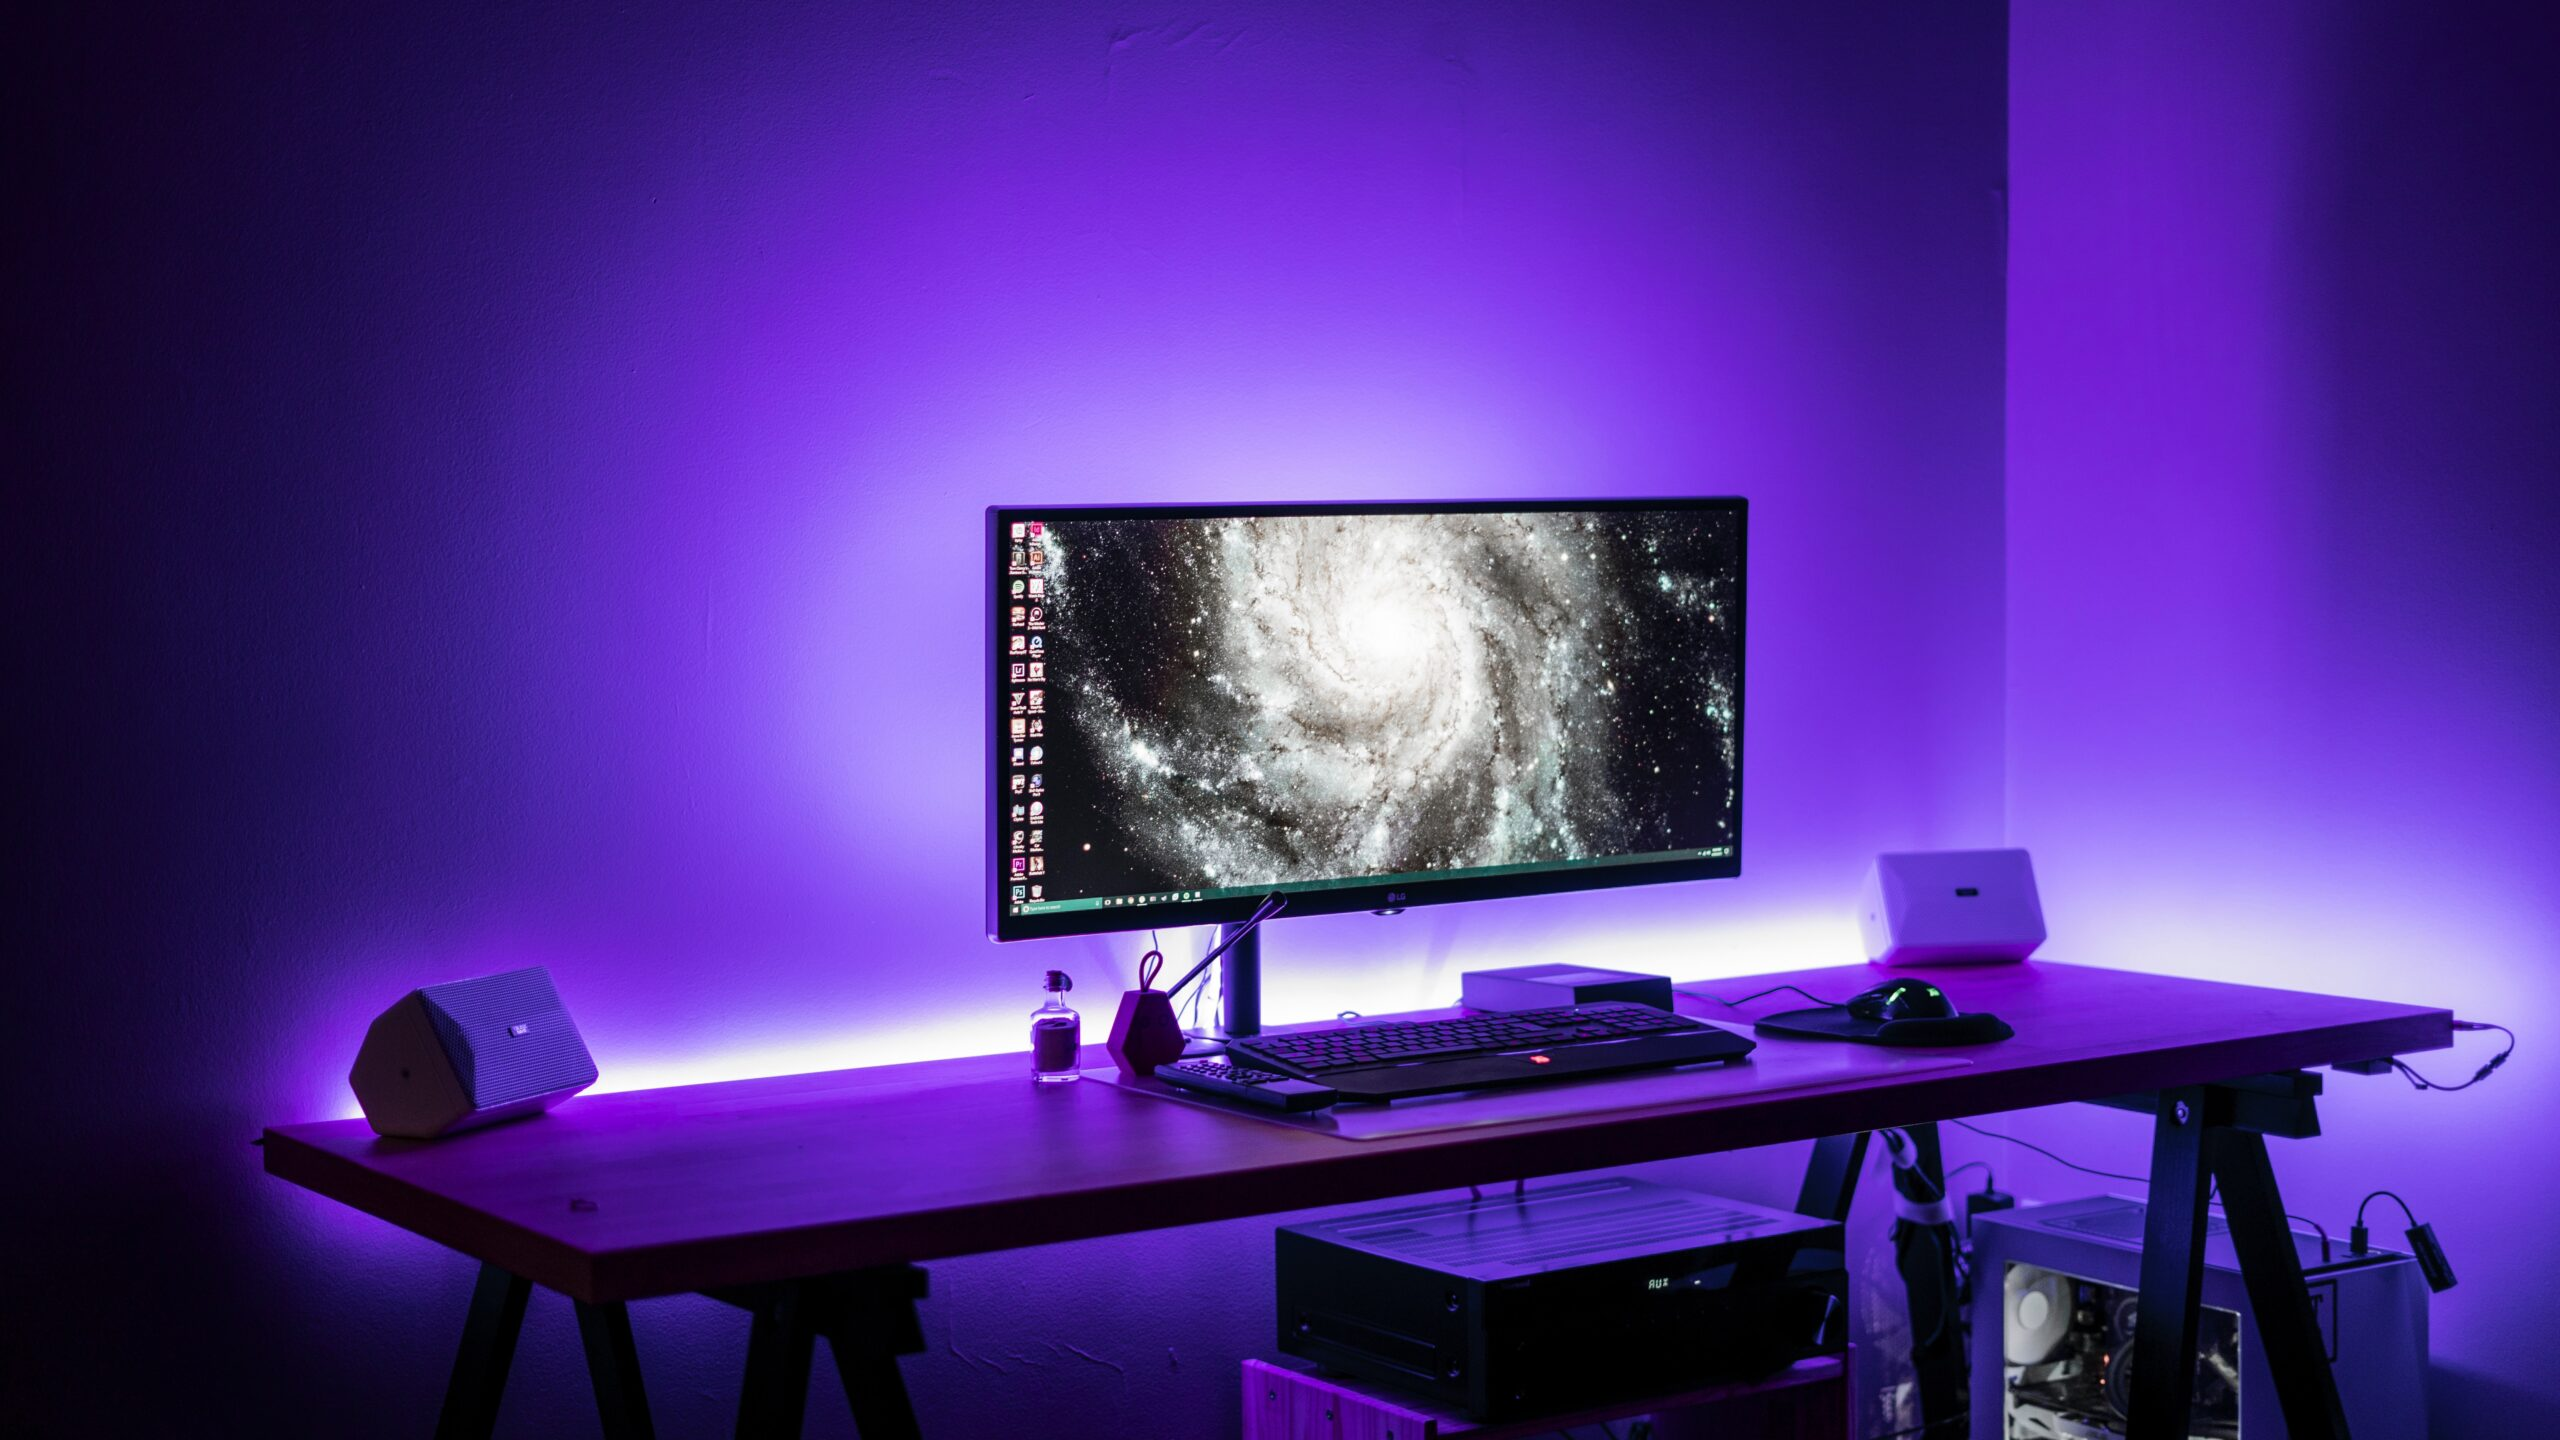 Gaming computer against purple backlit wall